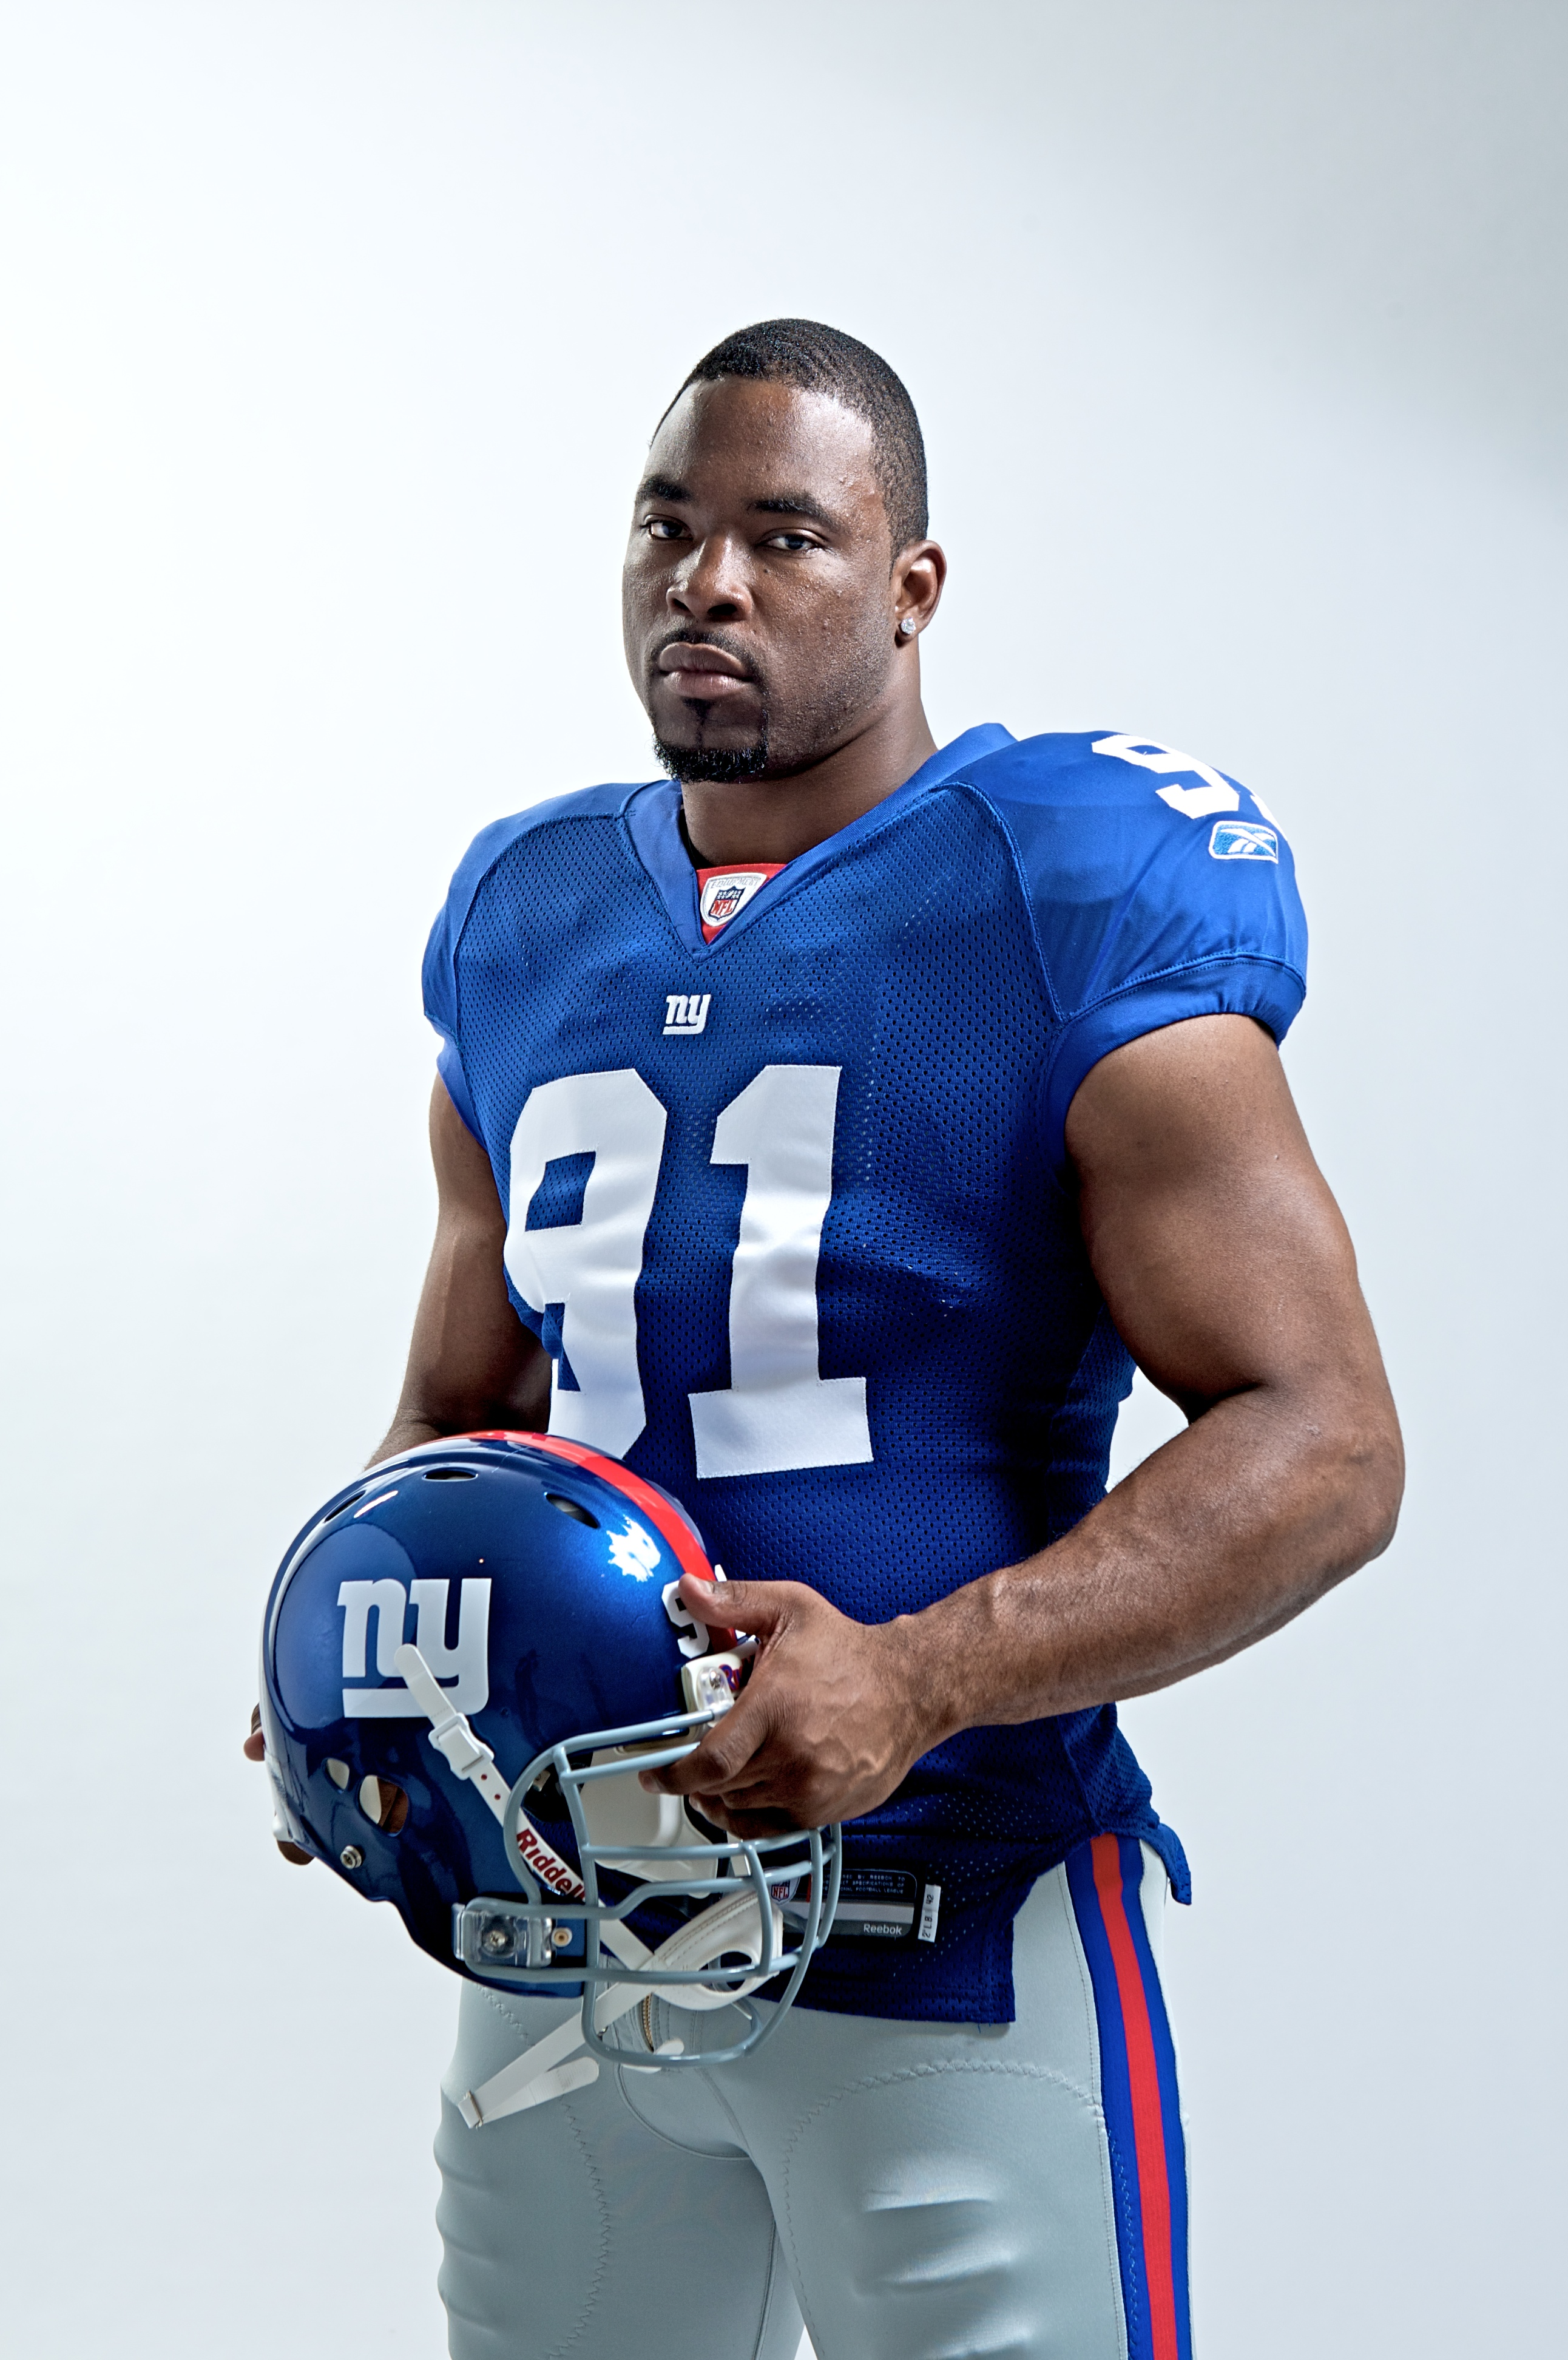 Justin Tuck younger photo one at pinterest.com